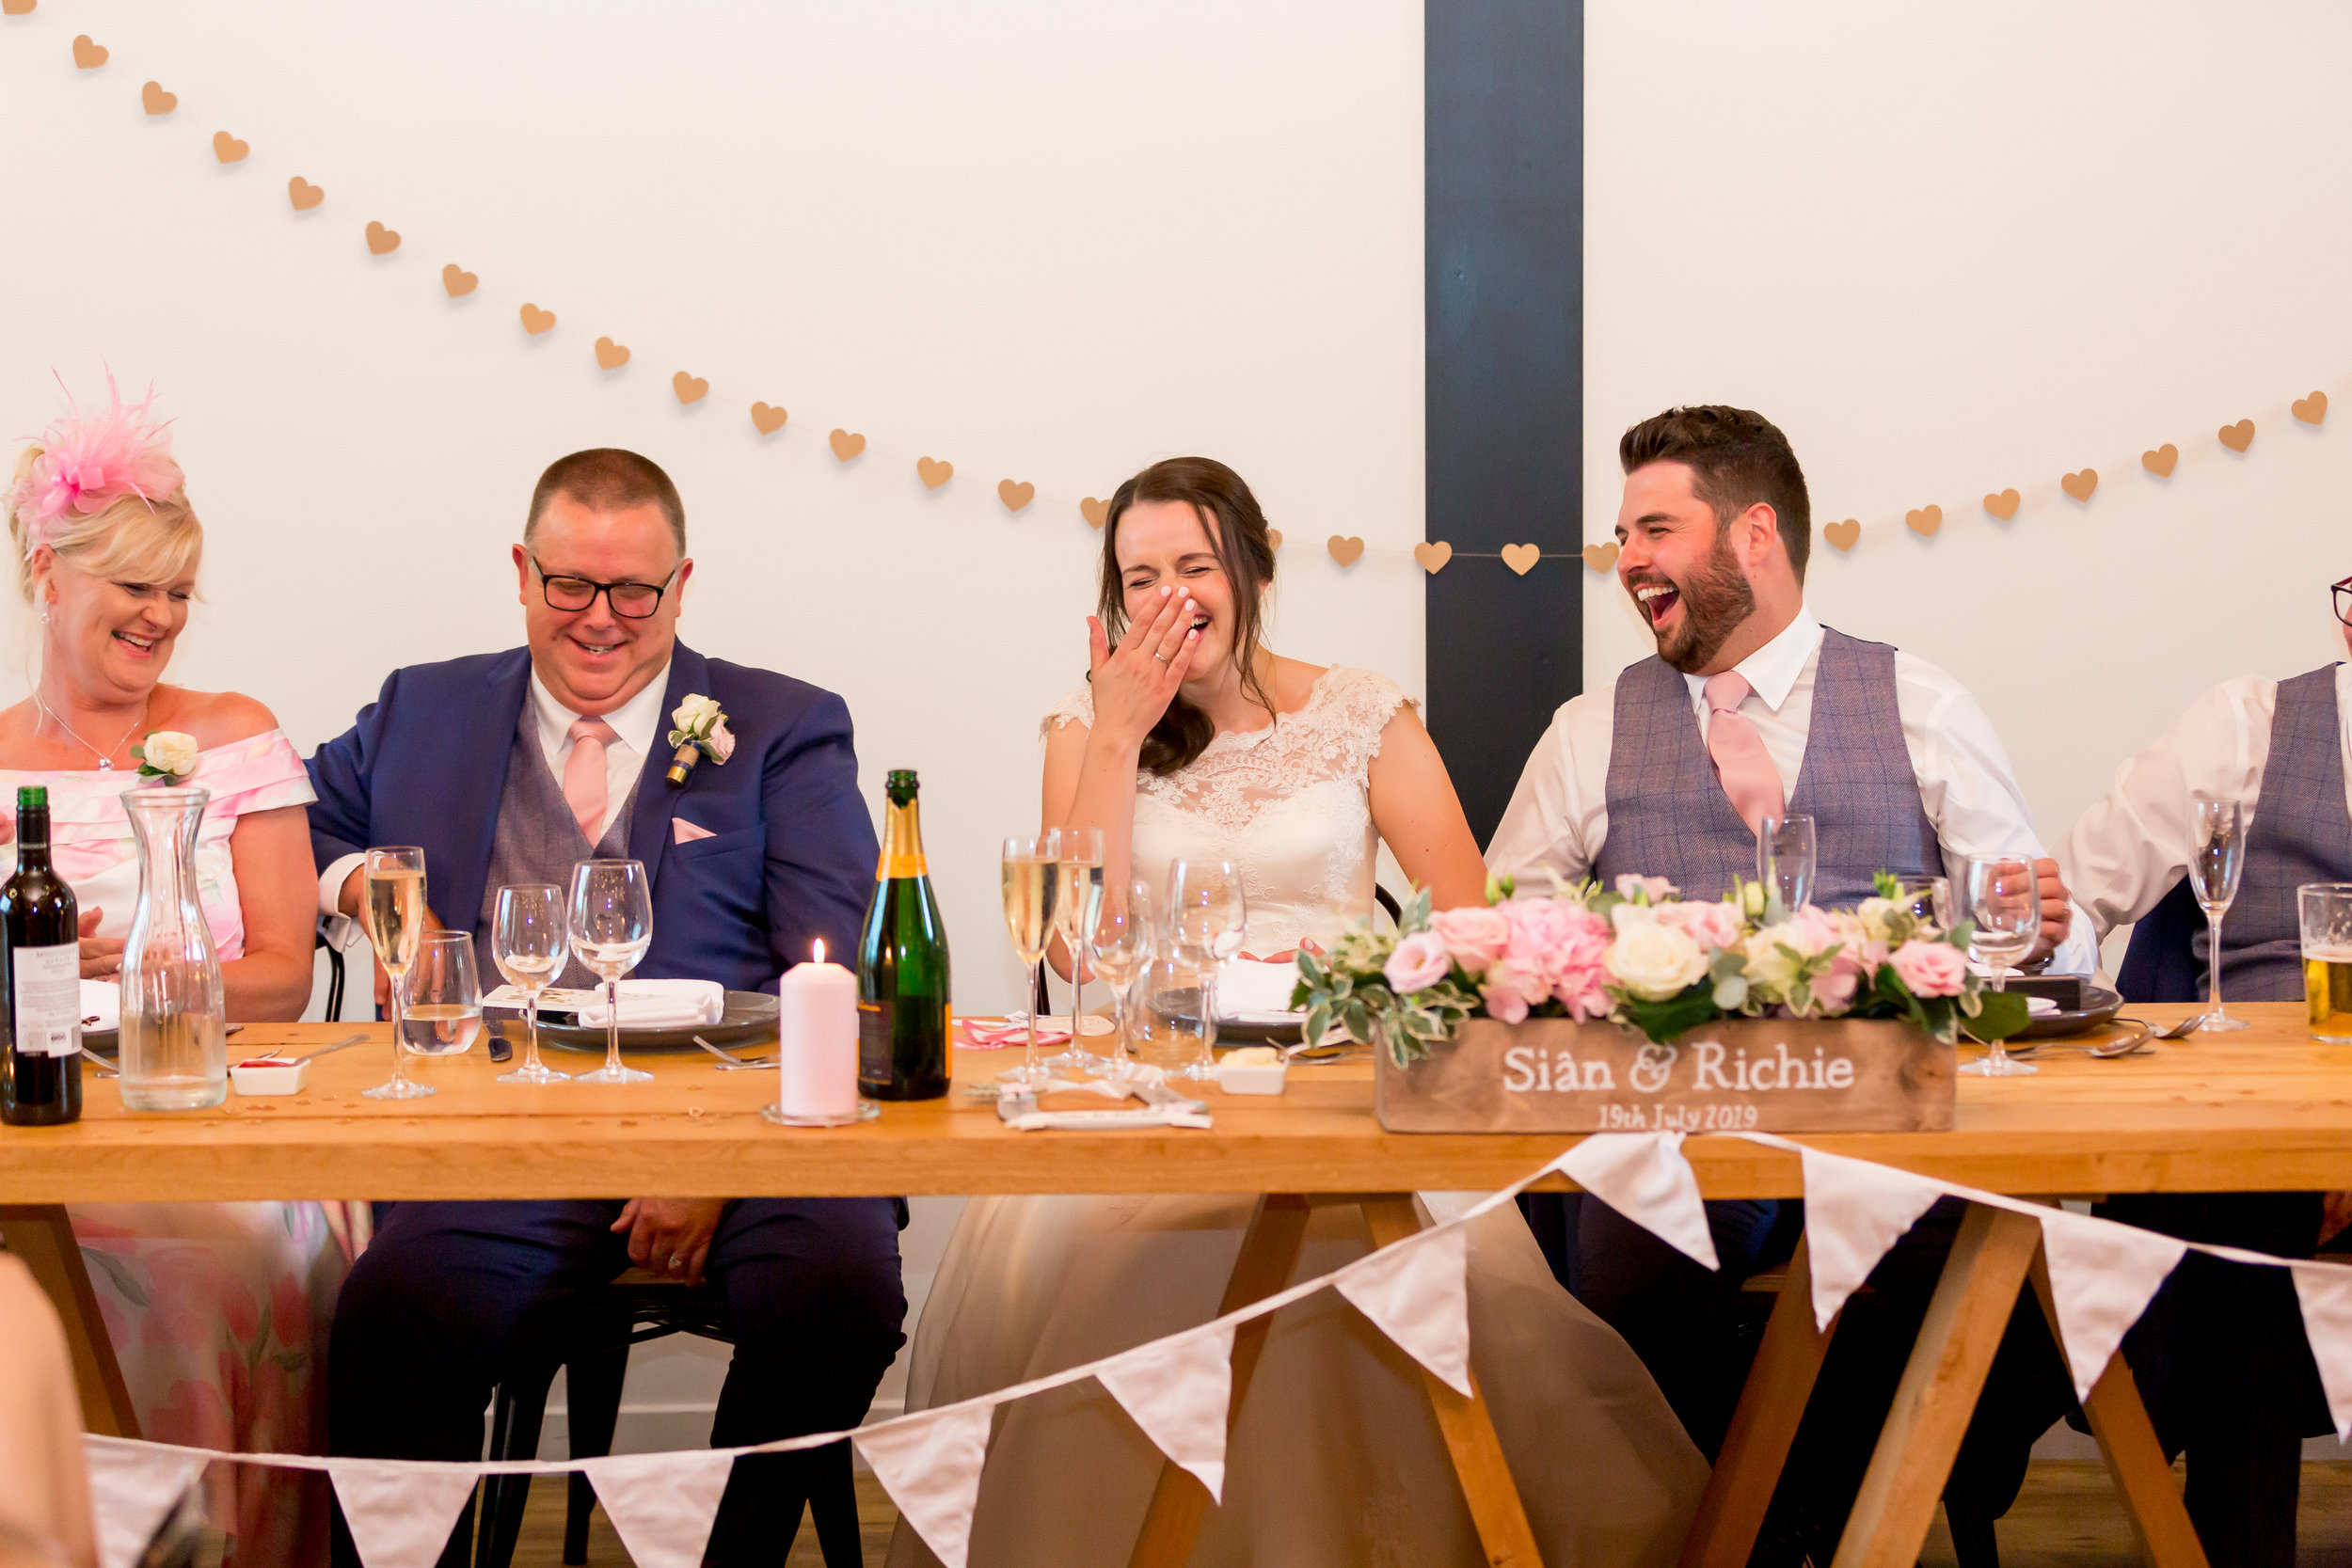 reception at upton barn in devon.jpg